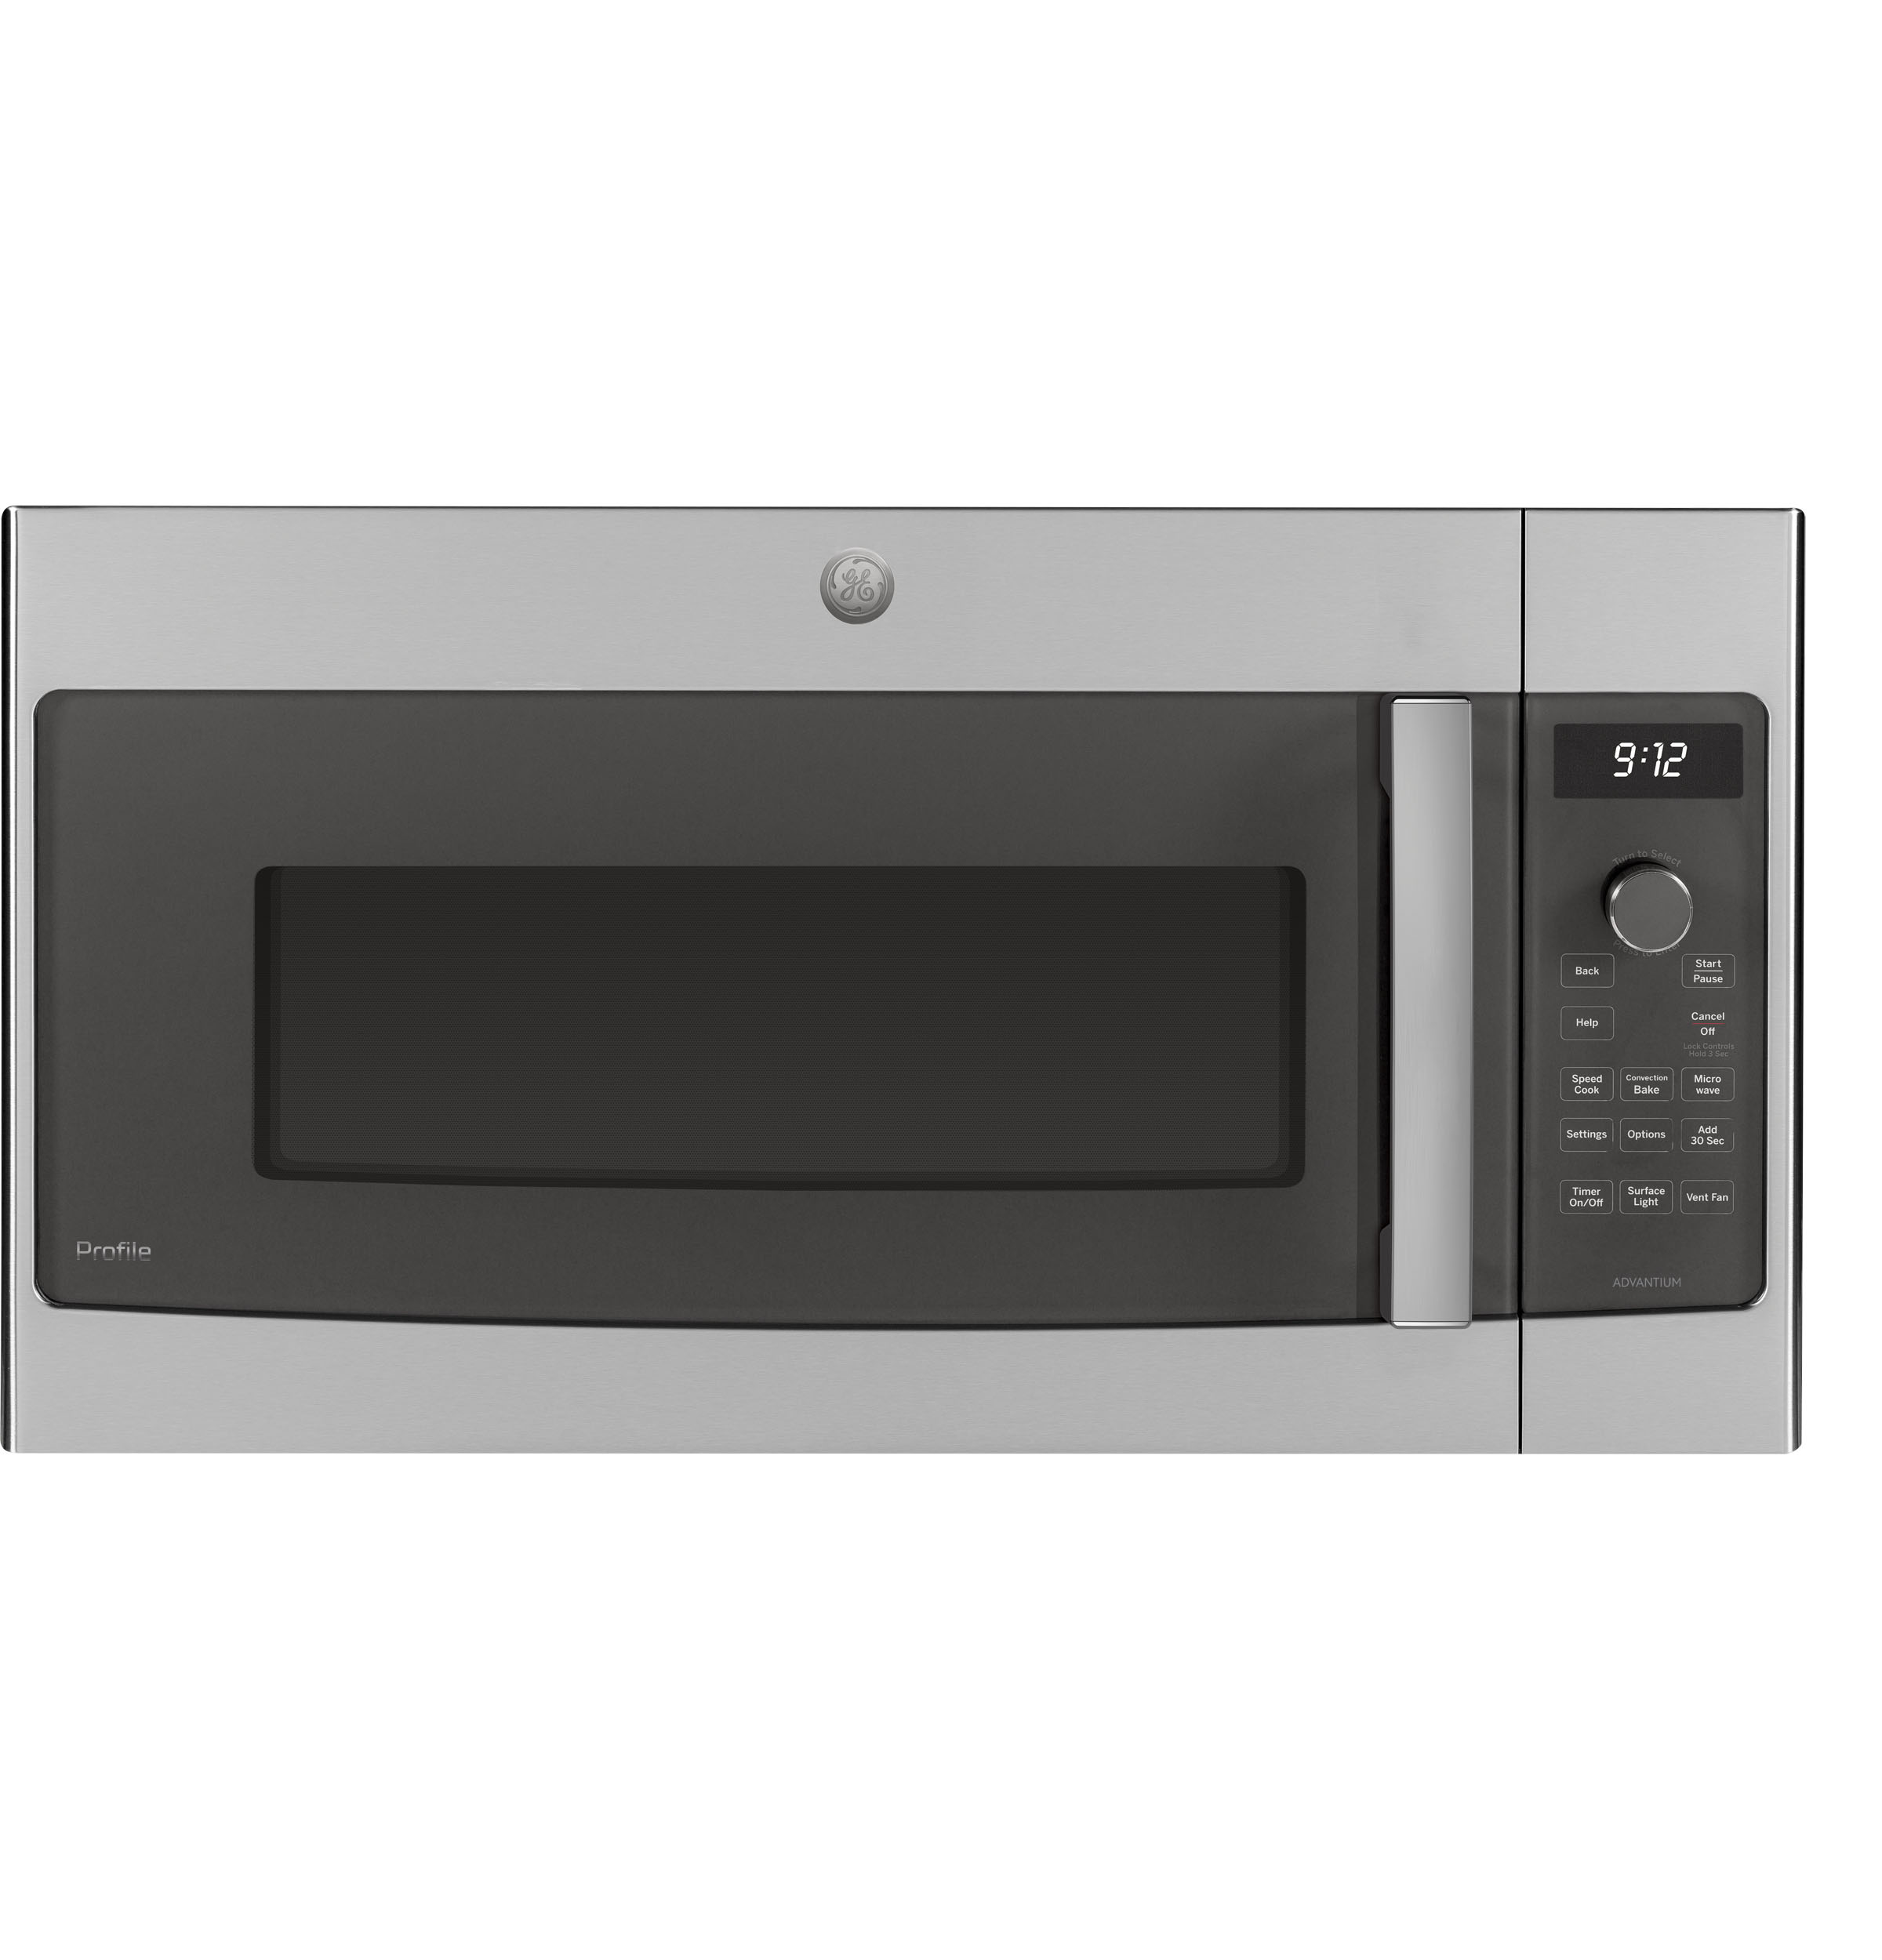 Model: PSA9120SPSS | GE Profile GE Profile™ Over-the-Range Oven with Advantium® Technology